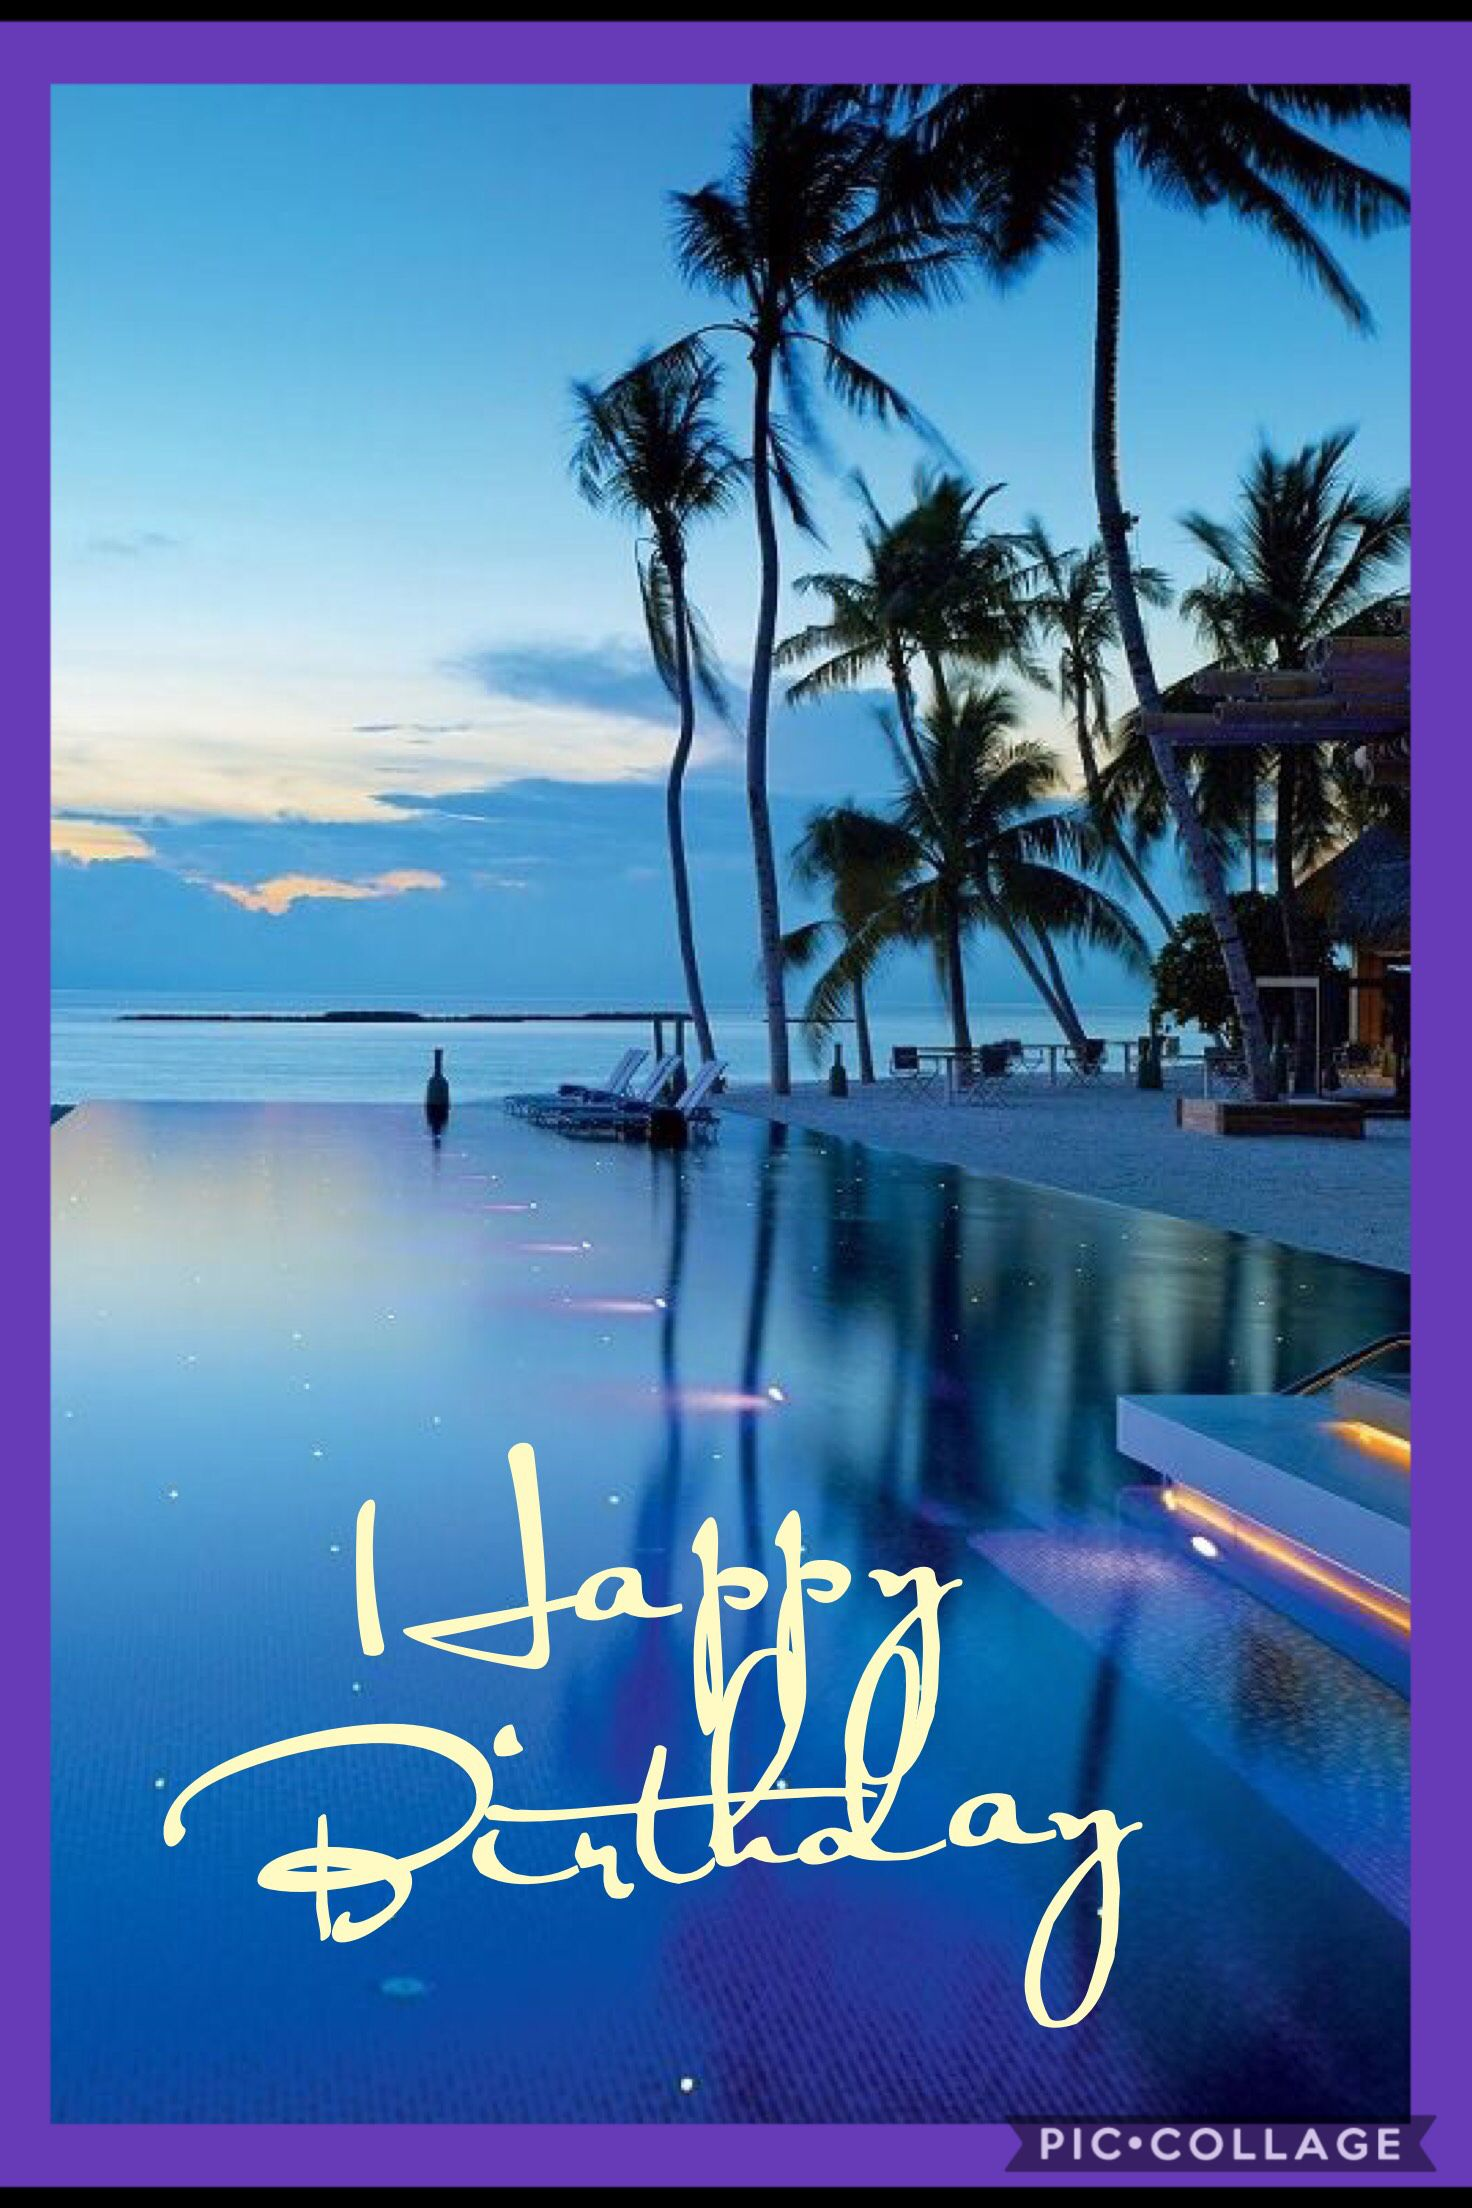 Tropic Bday With Images Happy Birthday Greetings Happy